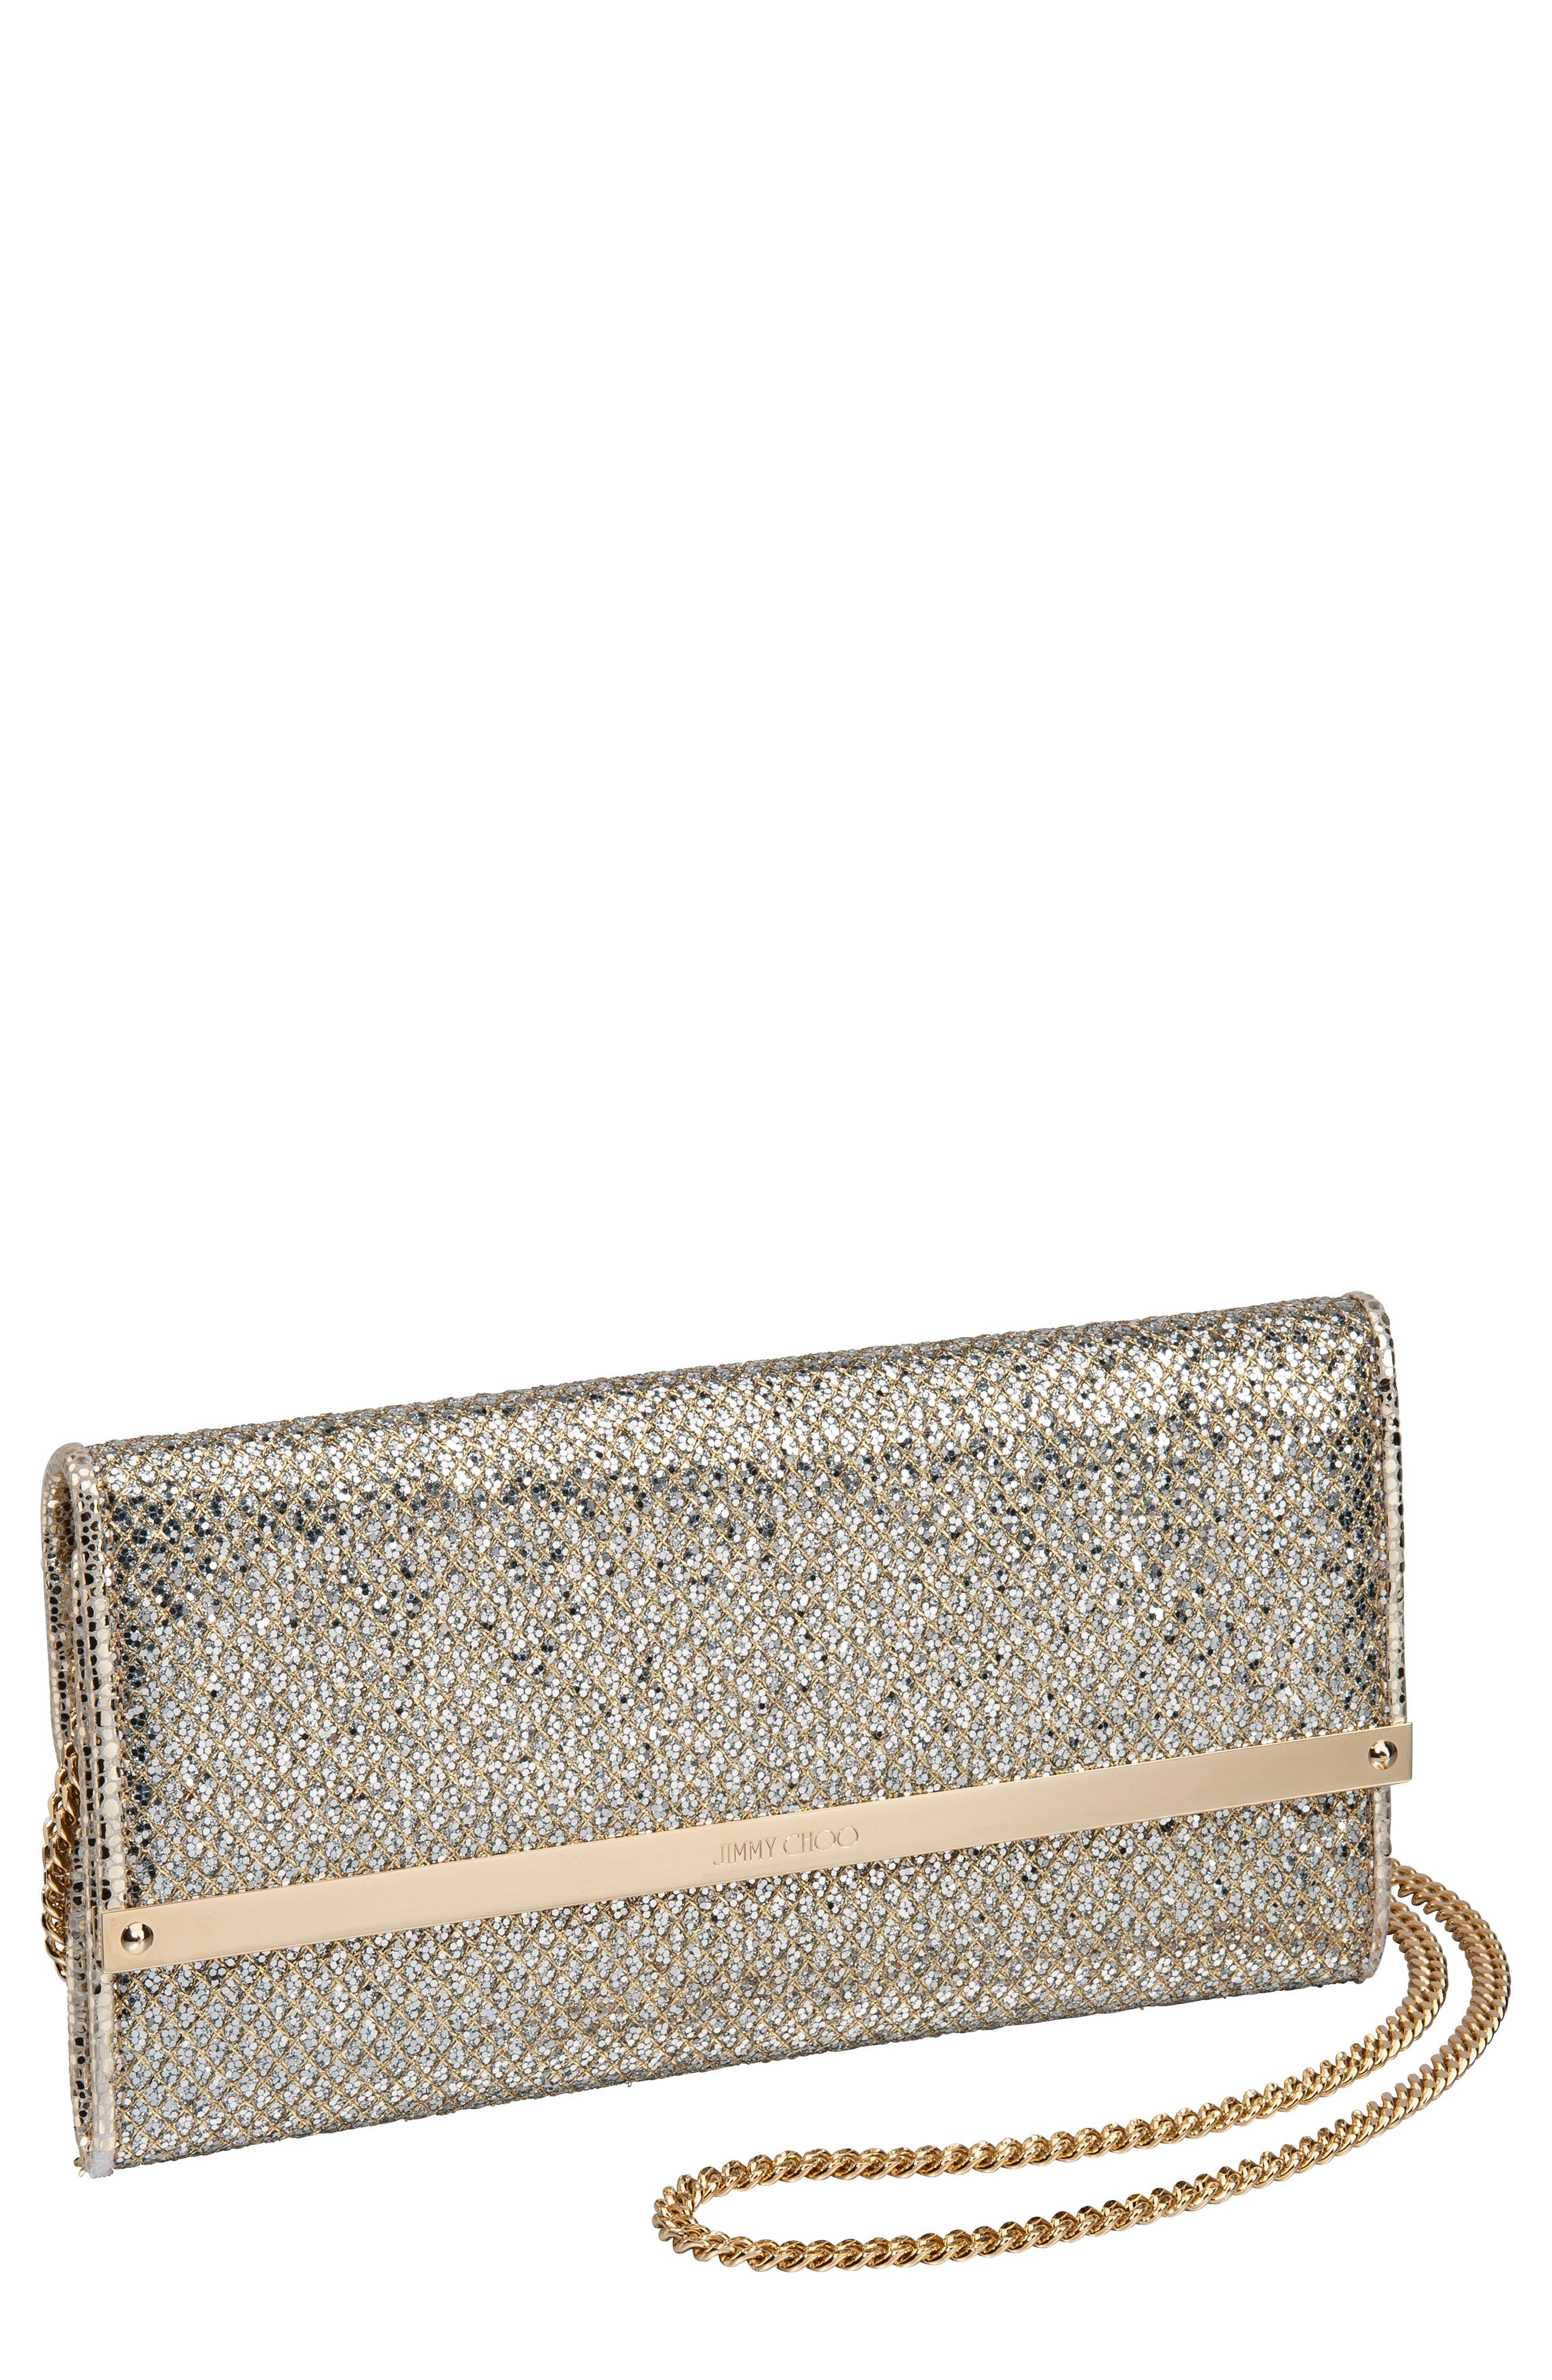 Alternate Image 1 Selected - Jimmy Choo Milla Glitter Wallet on a Chain